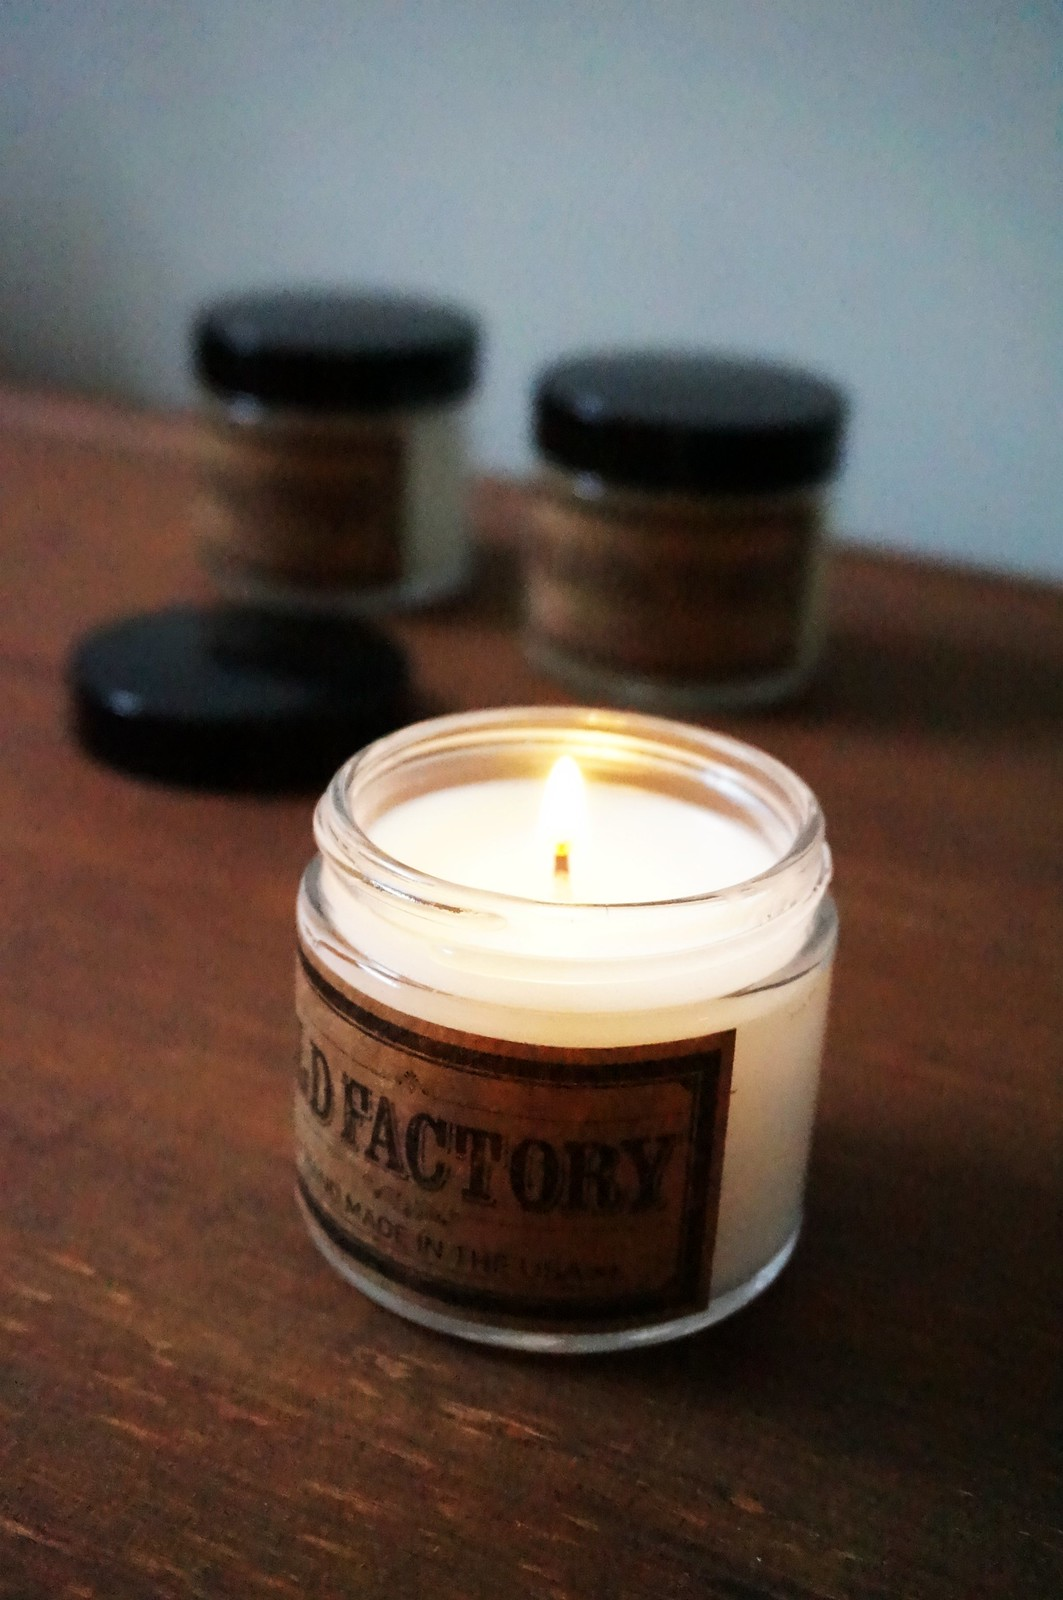 The Best Candles for Gifts